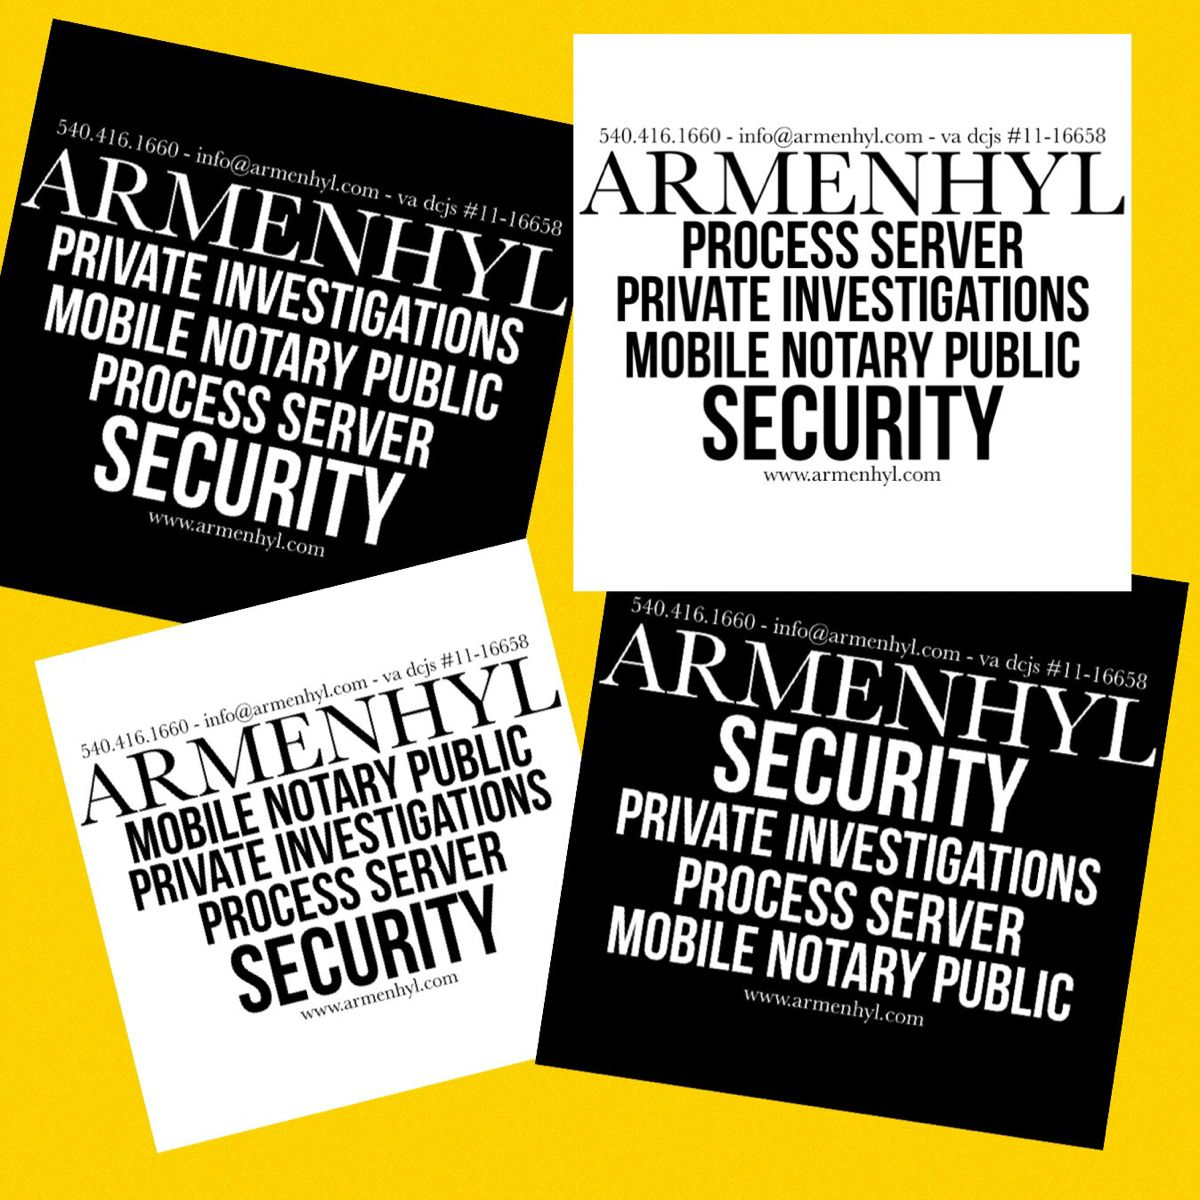 Armenhyl Process Service 22801 24401 22980 22901 22601 22630 22835